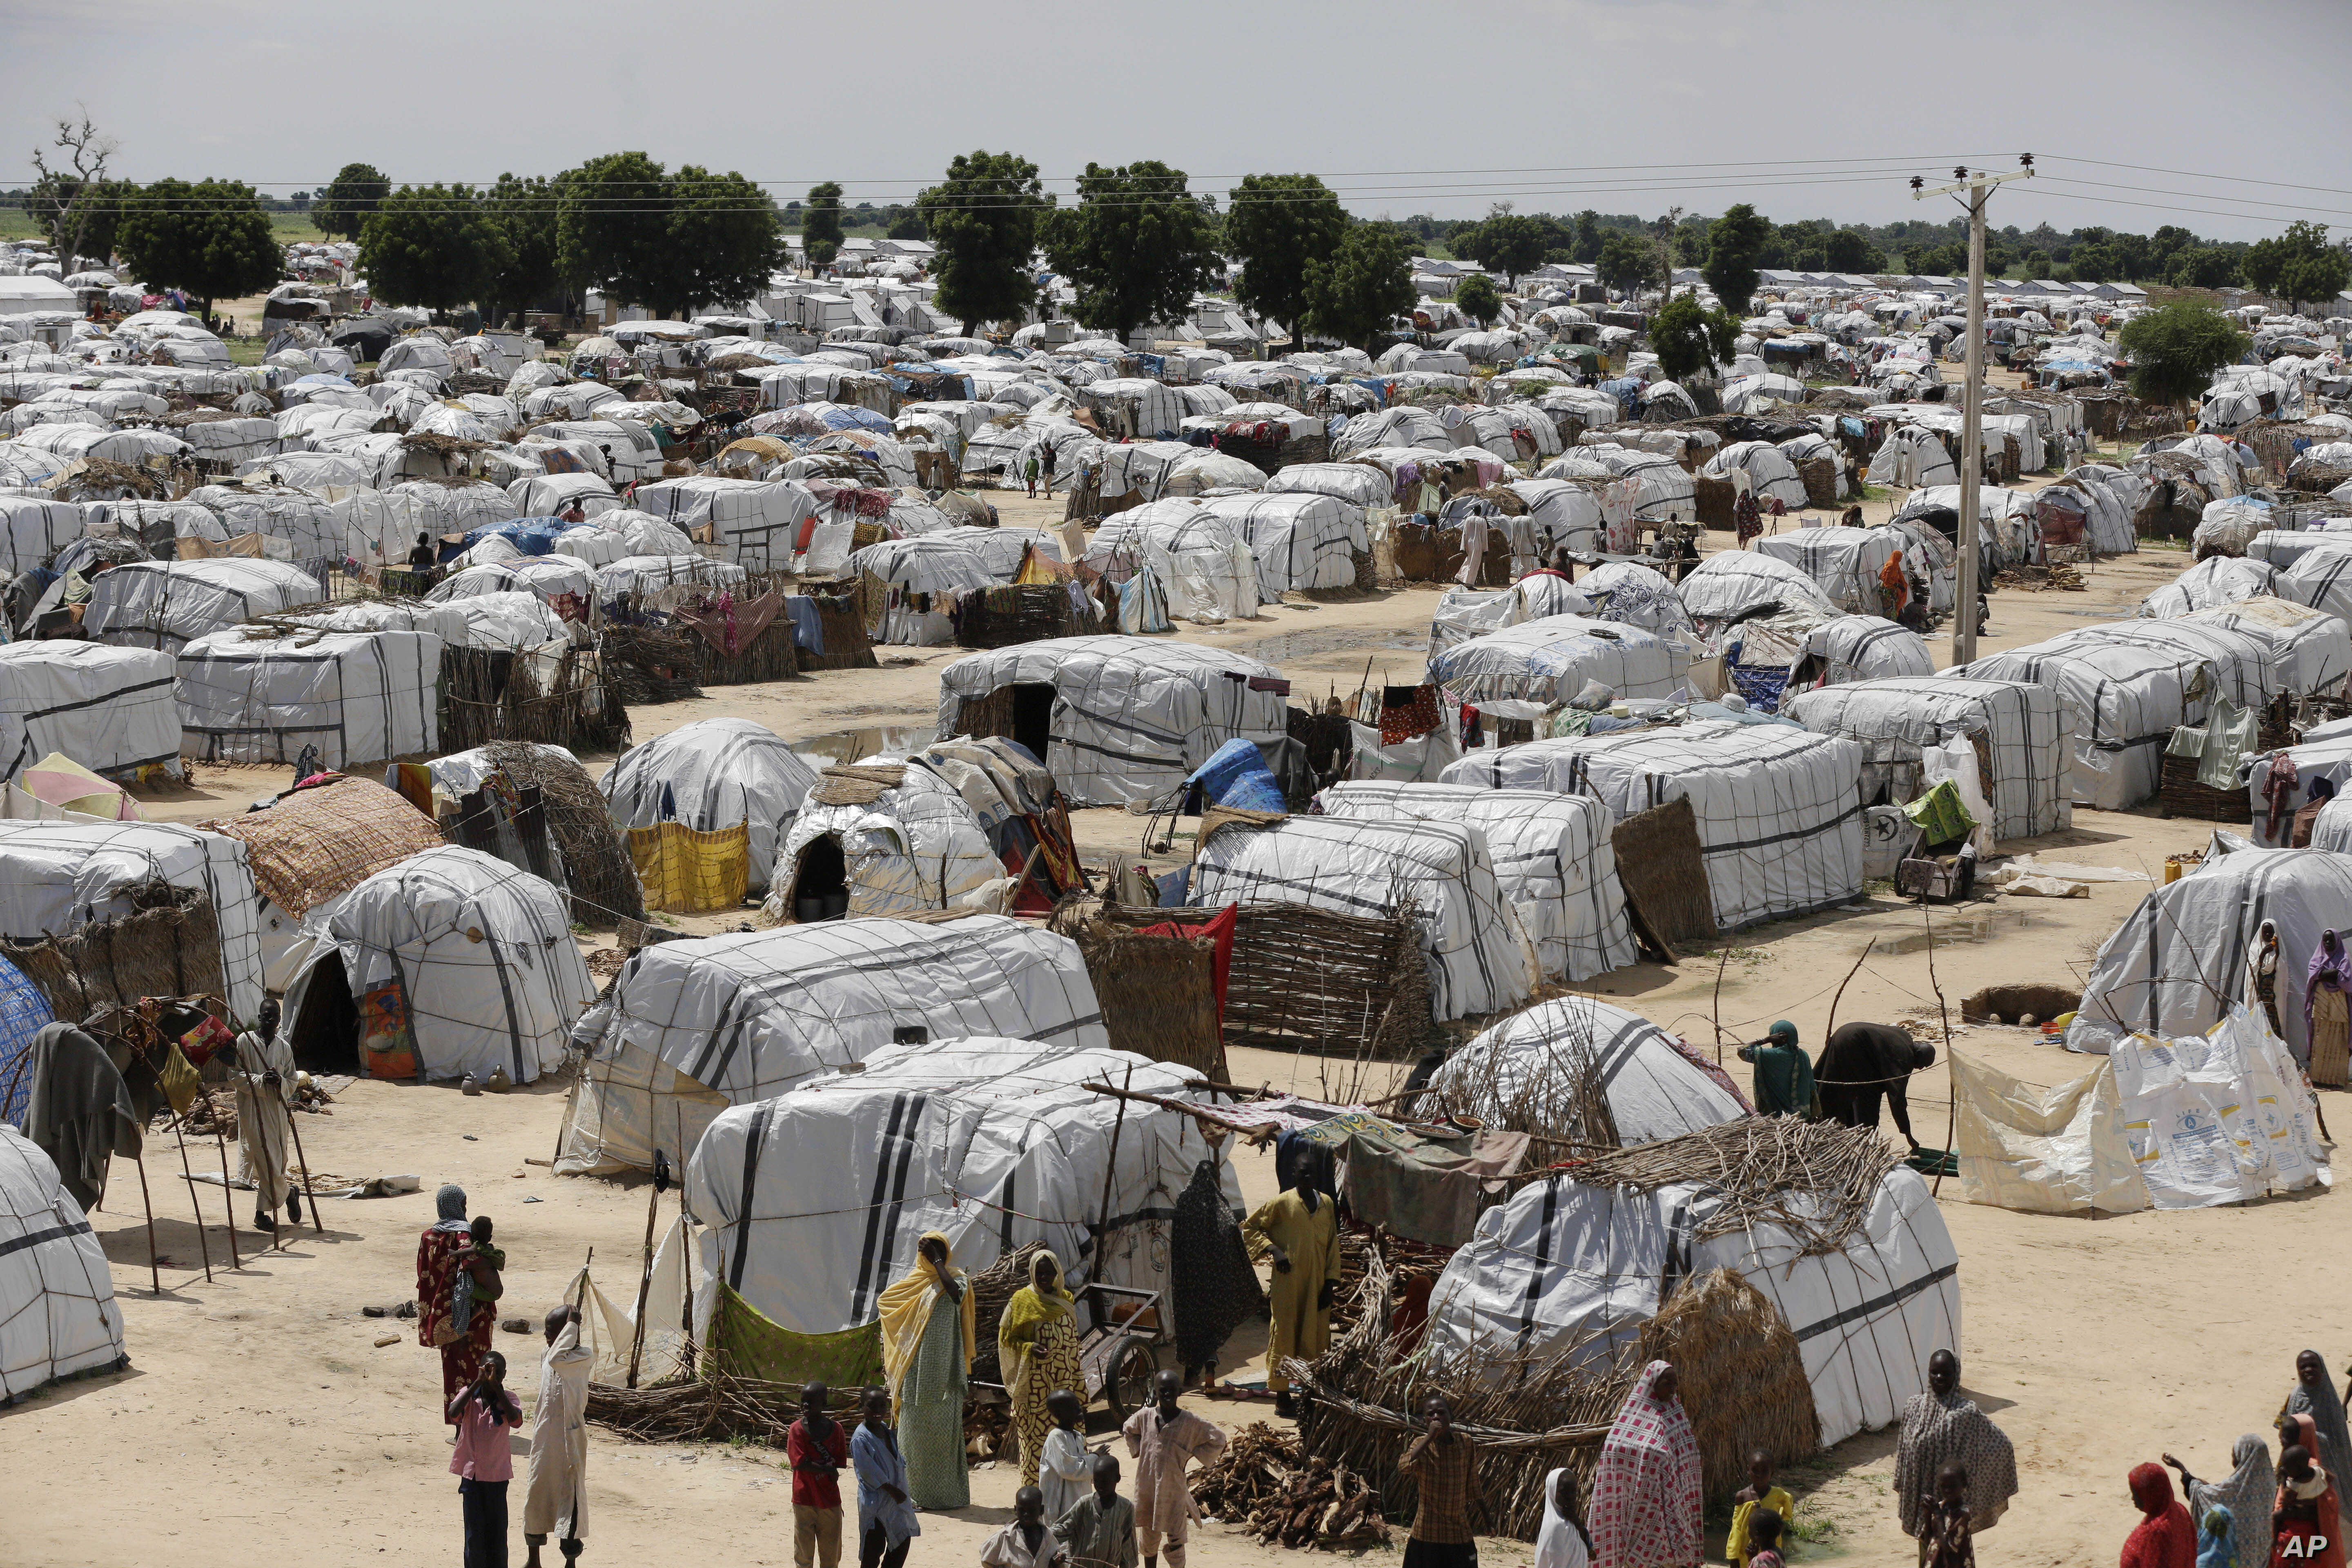 FILE - This view shows one of the biggest camps for people displaced by Islamist extremists in Maiduguri, Nigeria, Aug. 28, 2016. The U.N. Security Council on March 3, 2017, kicked off a visit to spotlight Africa's worst humanitarian crisis as millio...